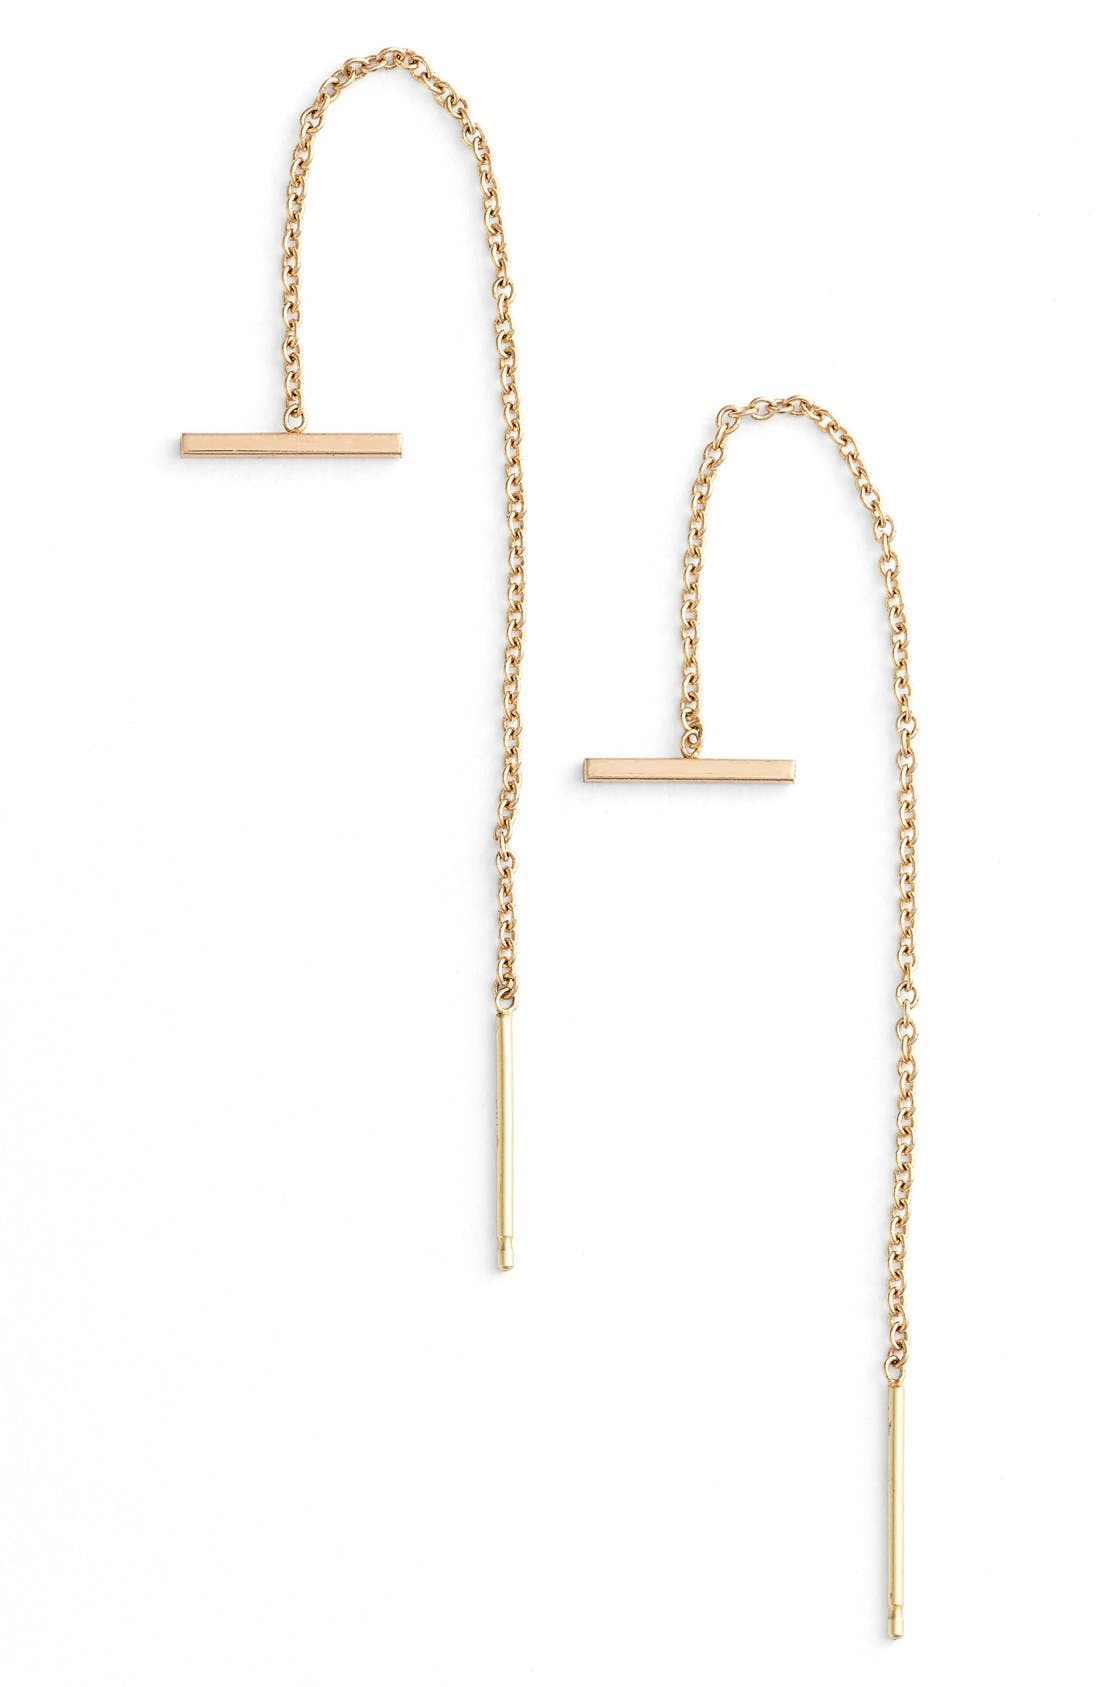 Main Image - Zoë Chicco Bar Threader Earrings